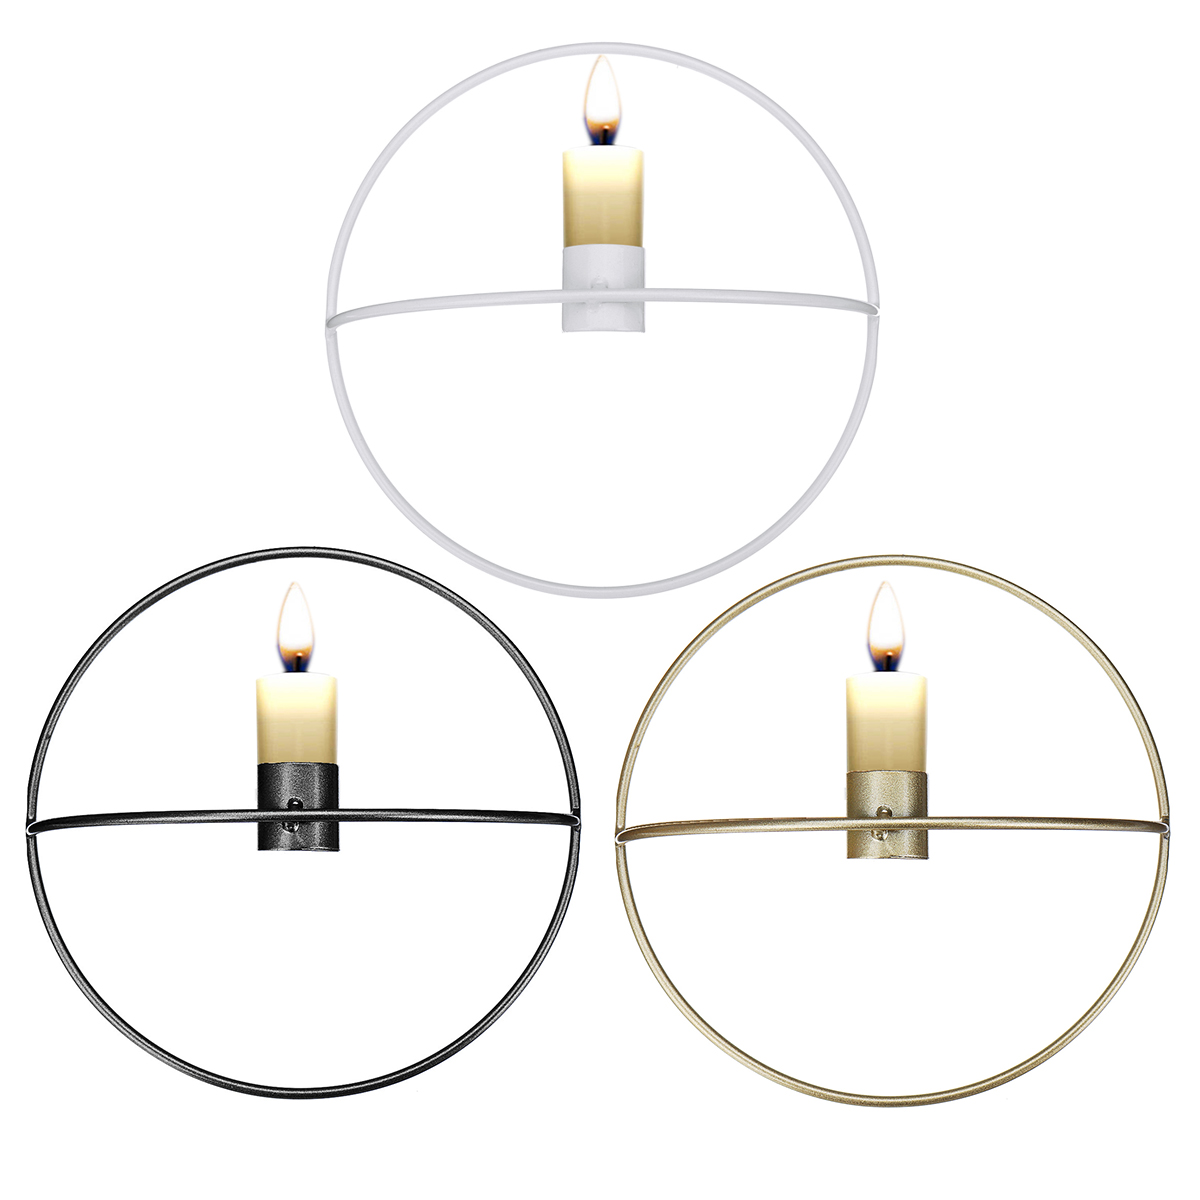 3D Geometrics Wall Hanging Candlestick For Home Decoration